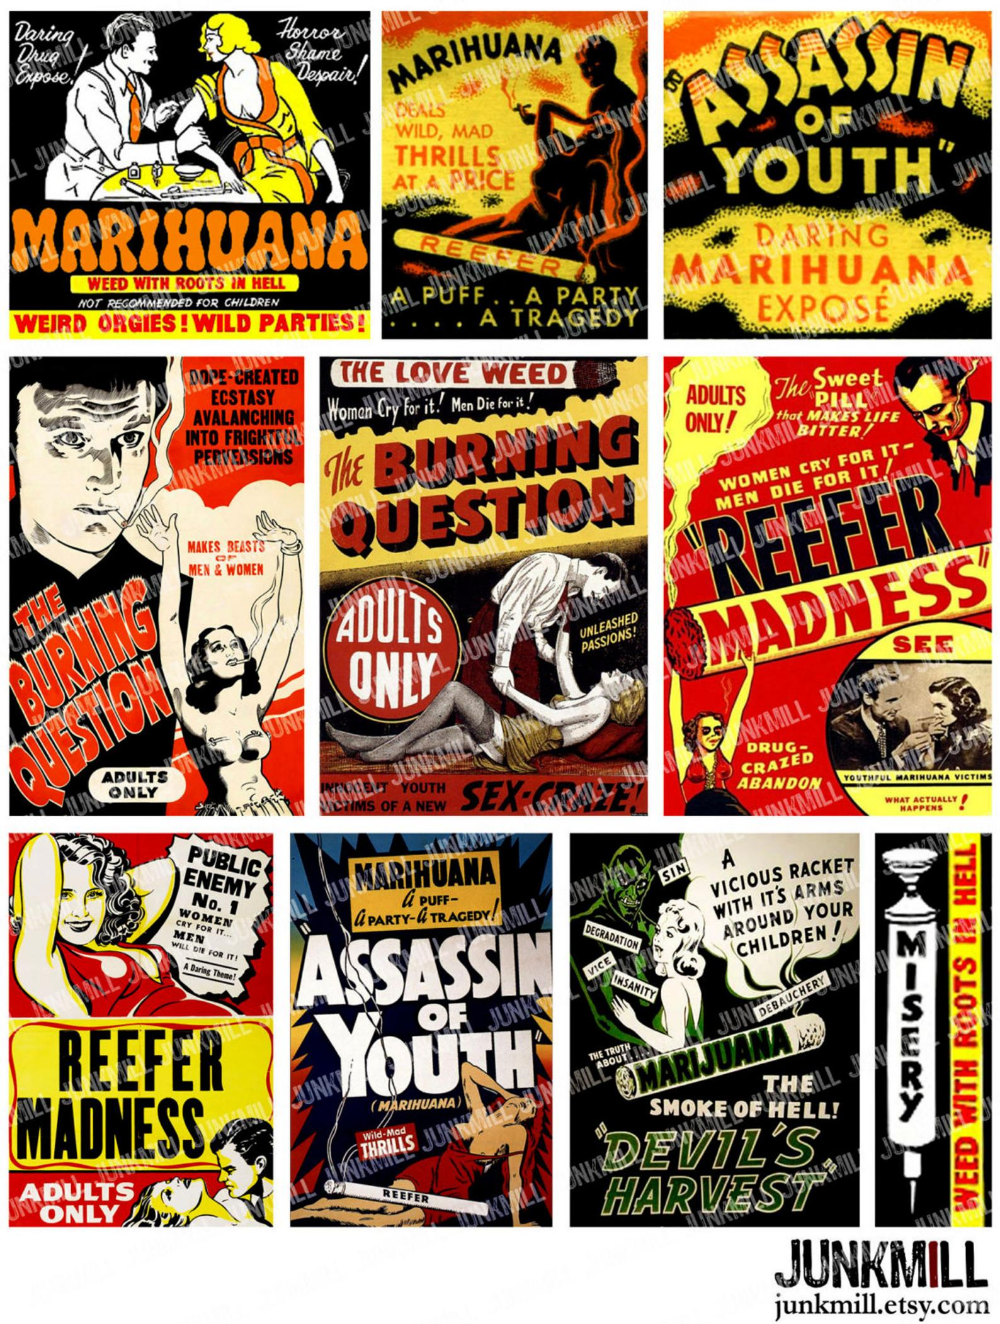 """1950s /""""Reefer Madness/"""" Vintage Marihuana Vintage Style Movie Poster 24x36"""